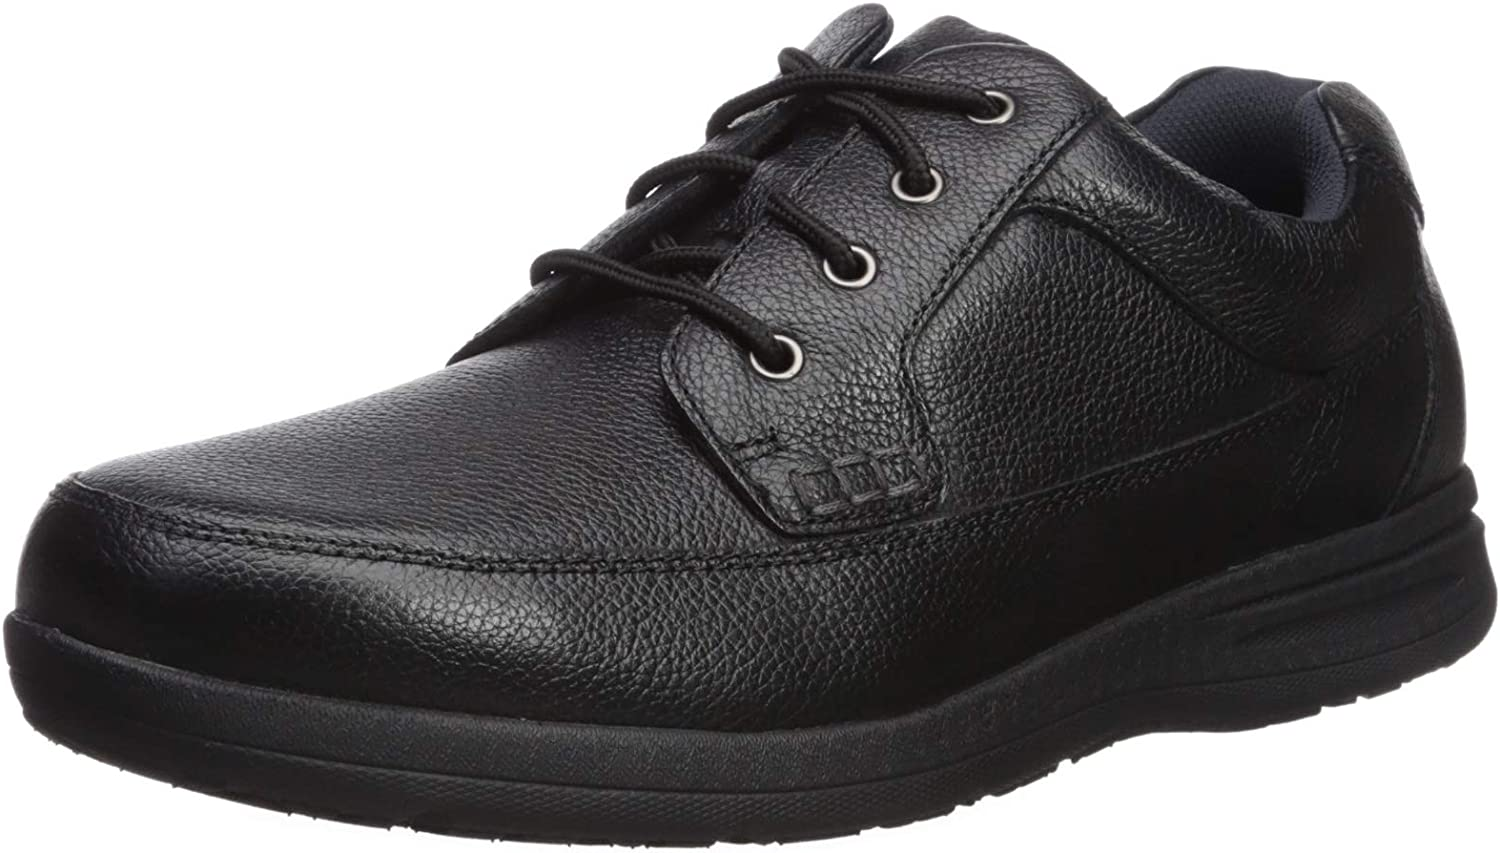 Nunn Bush Men's Cam Moc Toe Casual Lace-up with Comfort Gel and Memory Foam